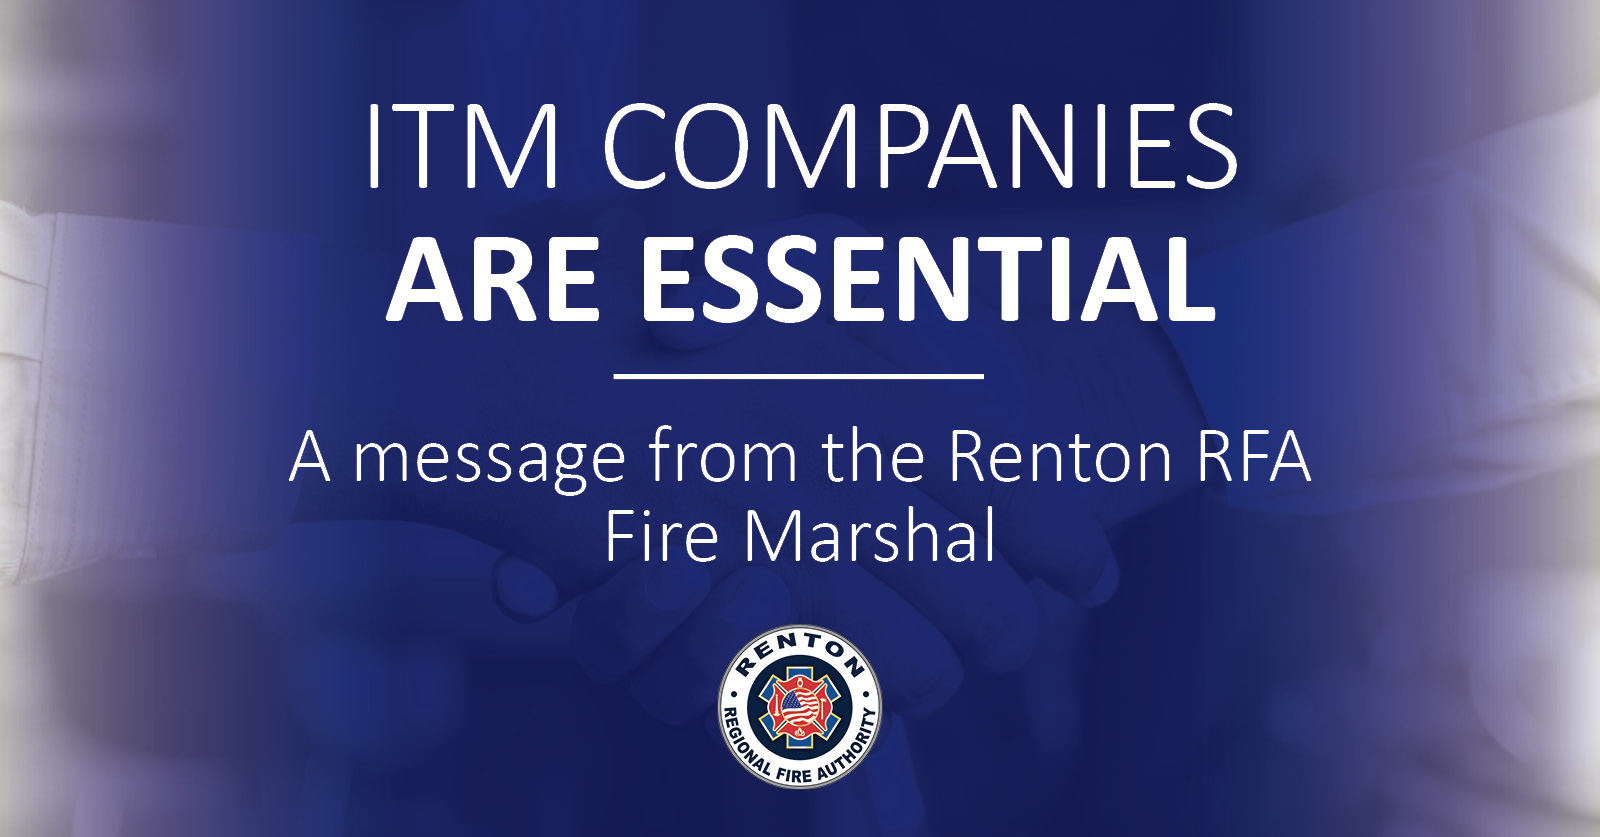 ITM Companies Are Essential Businesses